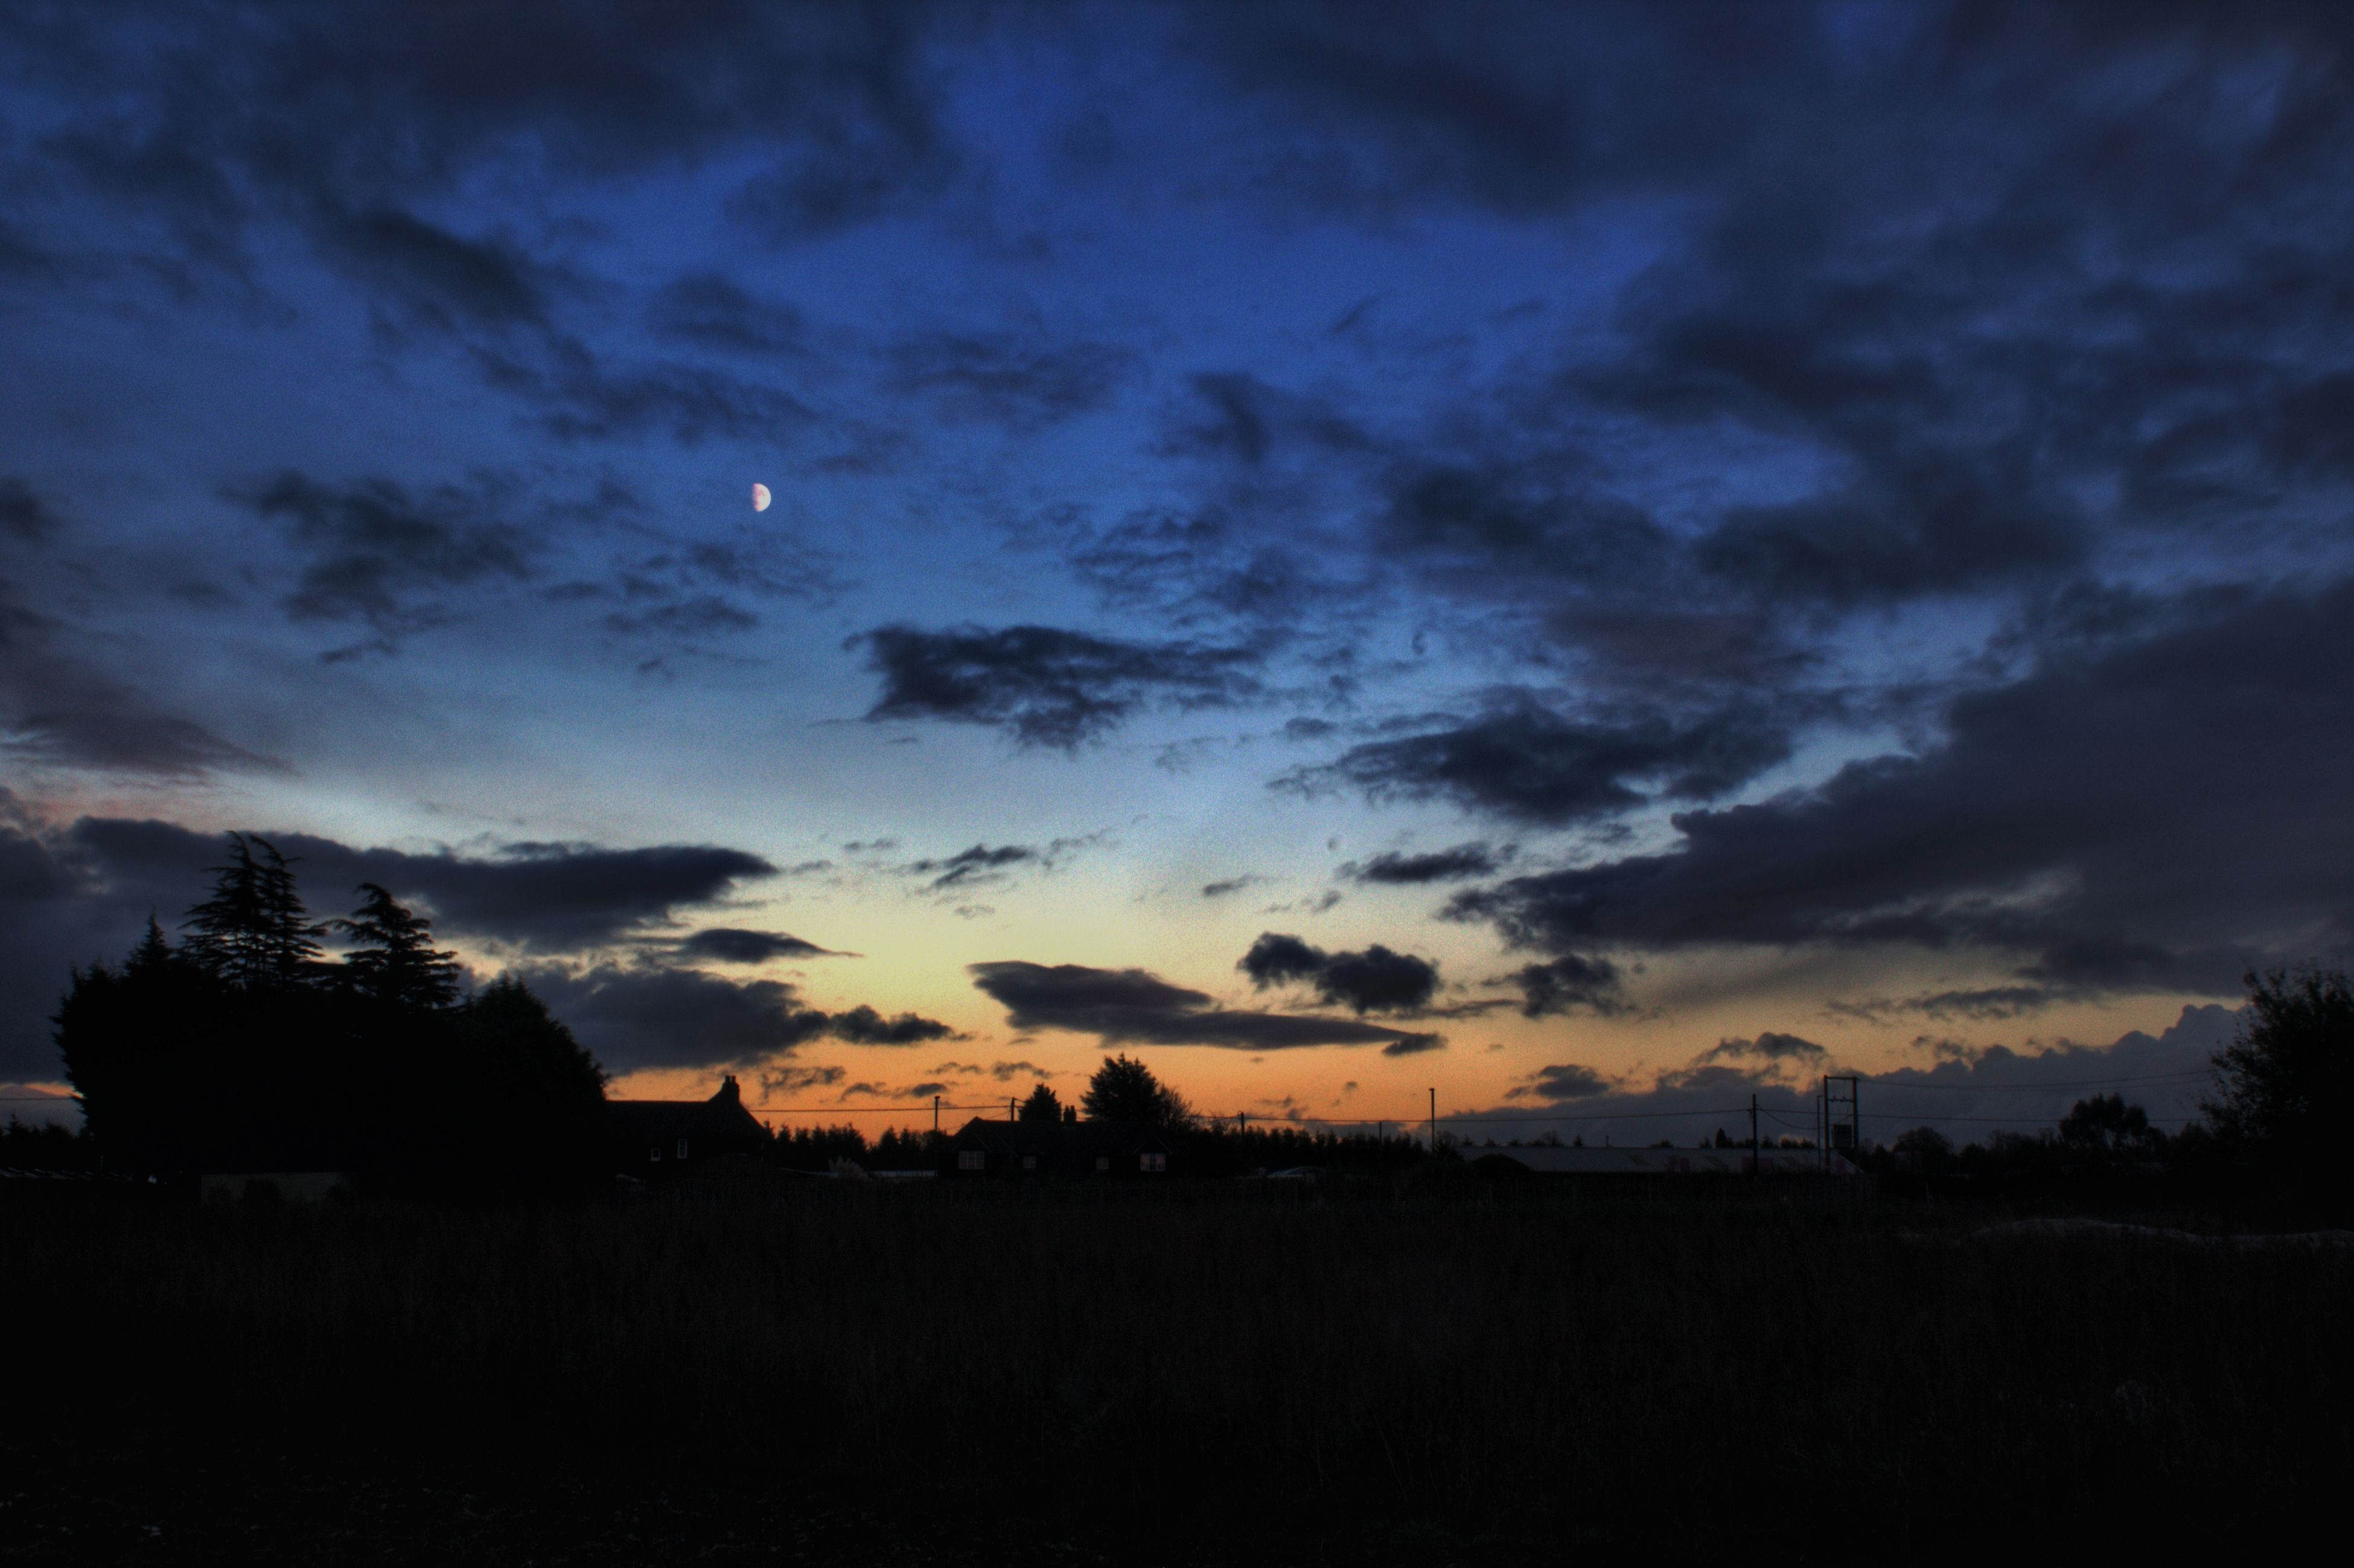 silhouette, sunset, sky, nature, dusk, tree, scenics, no people, dramatic sky, beauty in nature, outdoors, tranquil scene, tranquility, cloud - sky, day